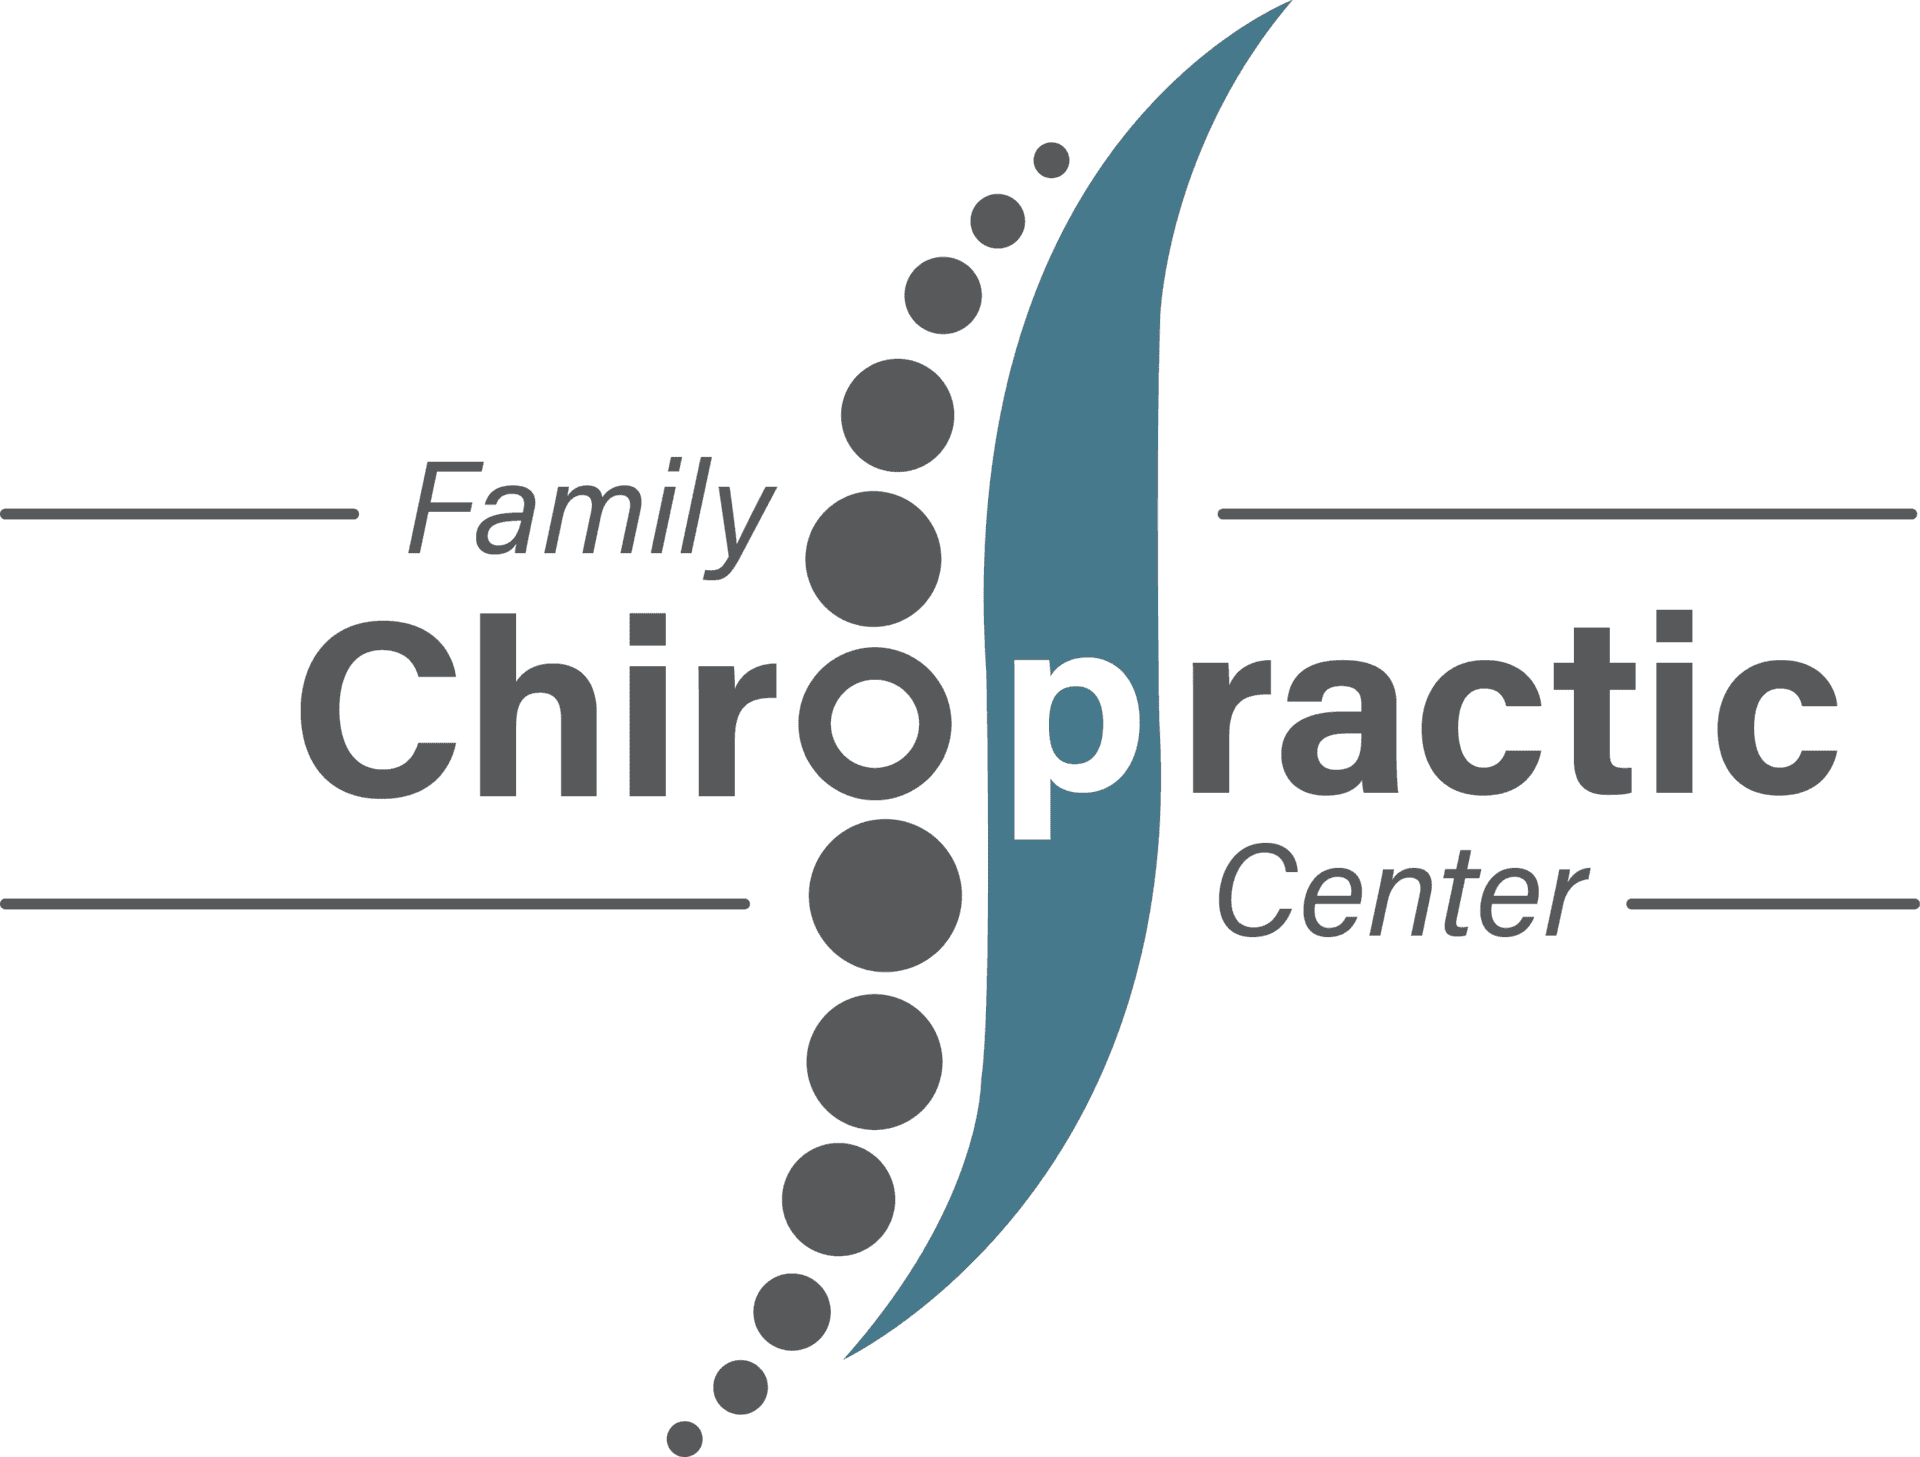 Family Chiropractic Center - LOGO